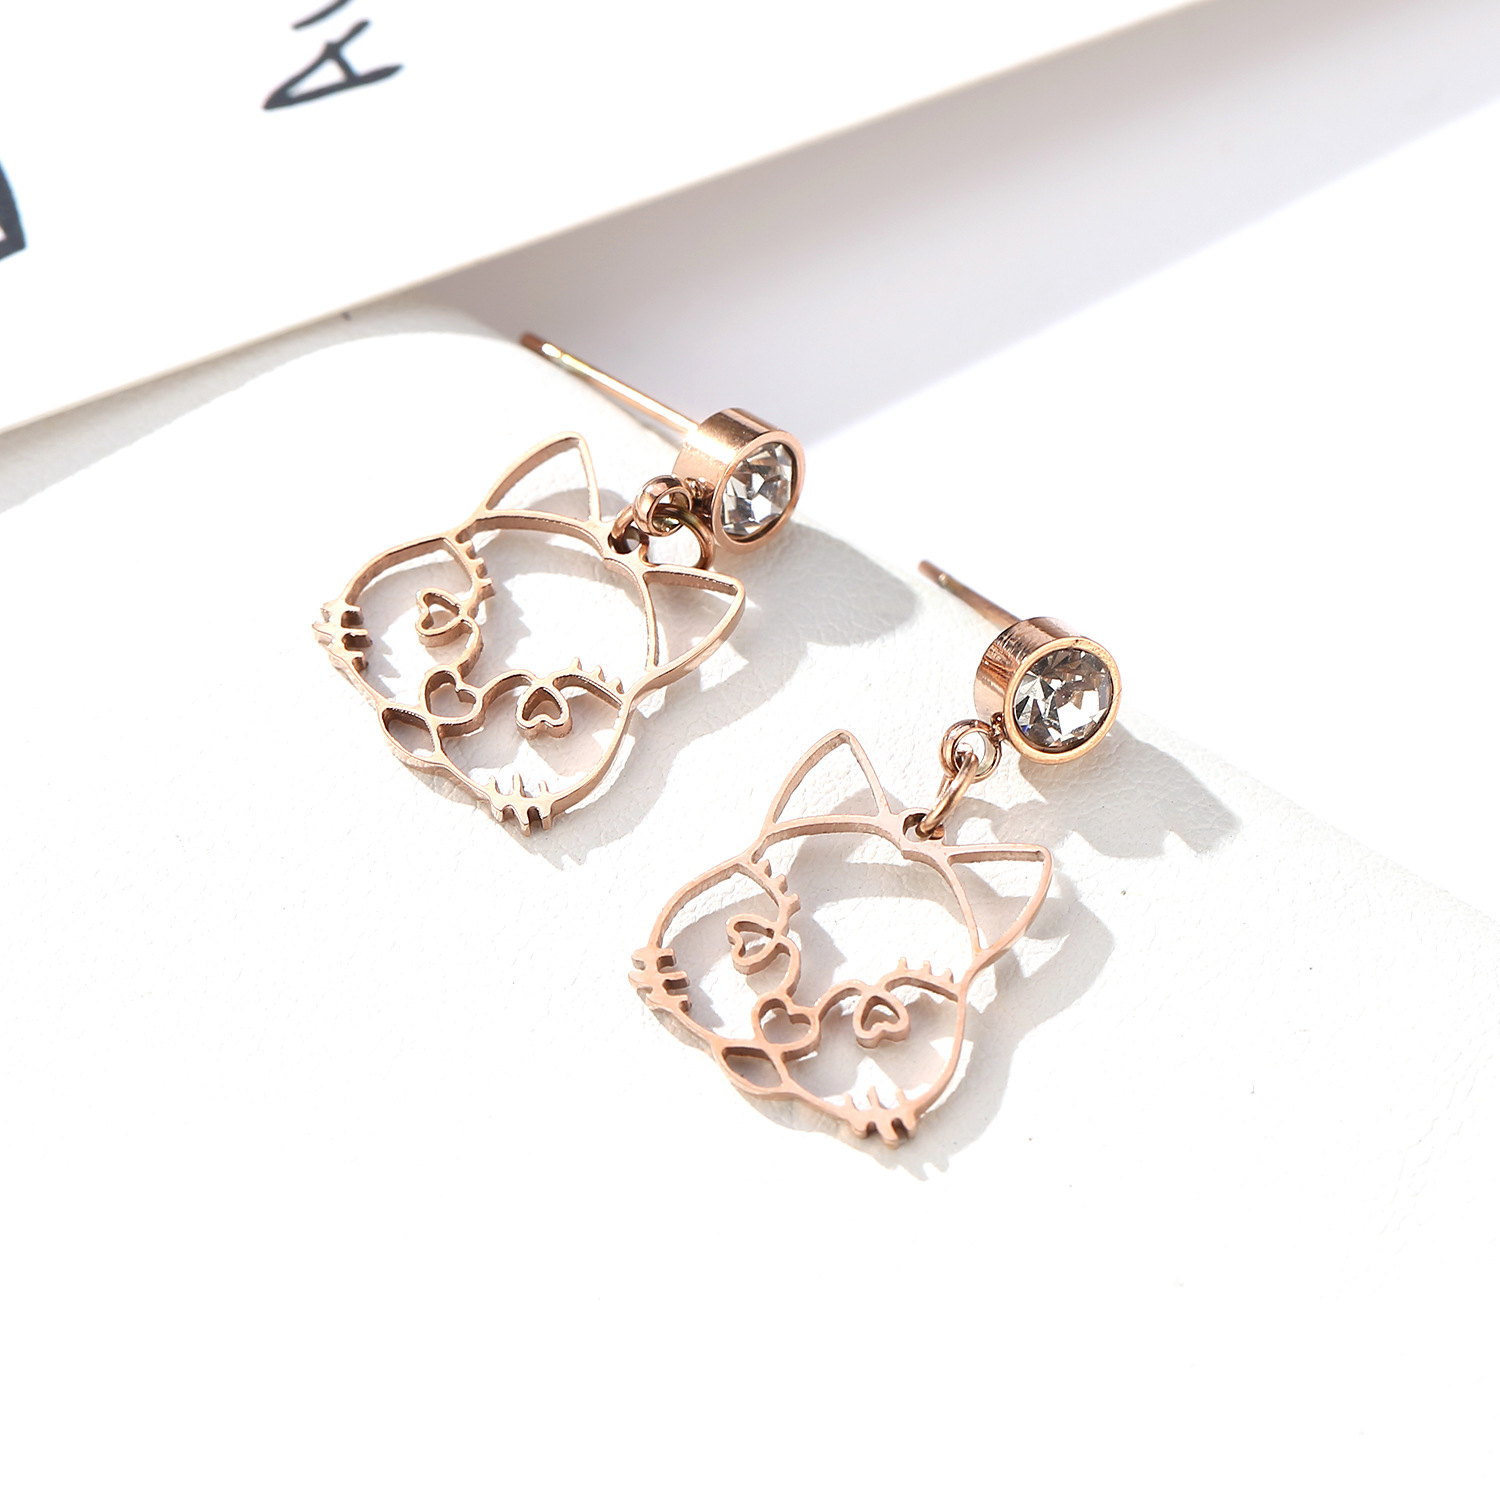 folk-custom metal plating Titanium steel earrings (Rose gold pair)NHIM0975-Rose gold pair